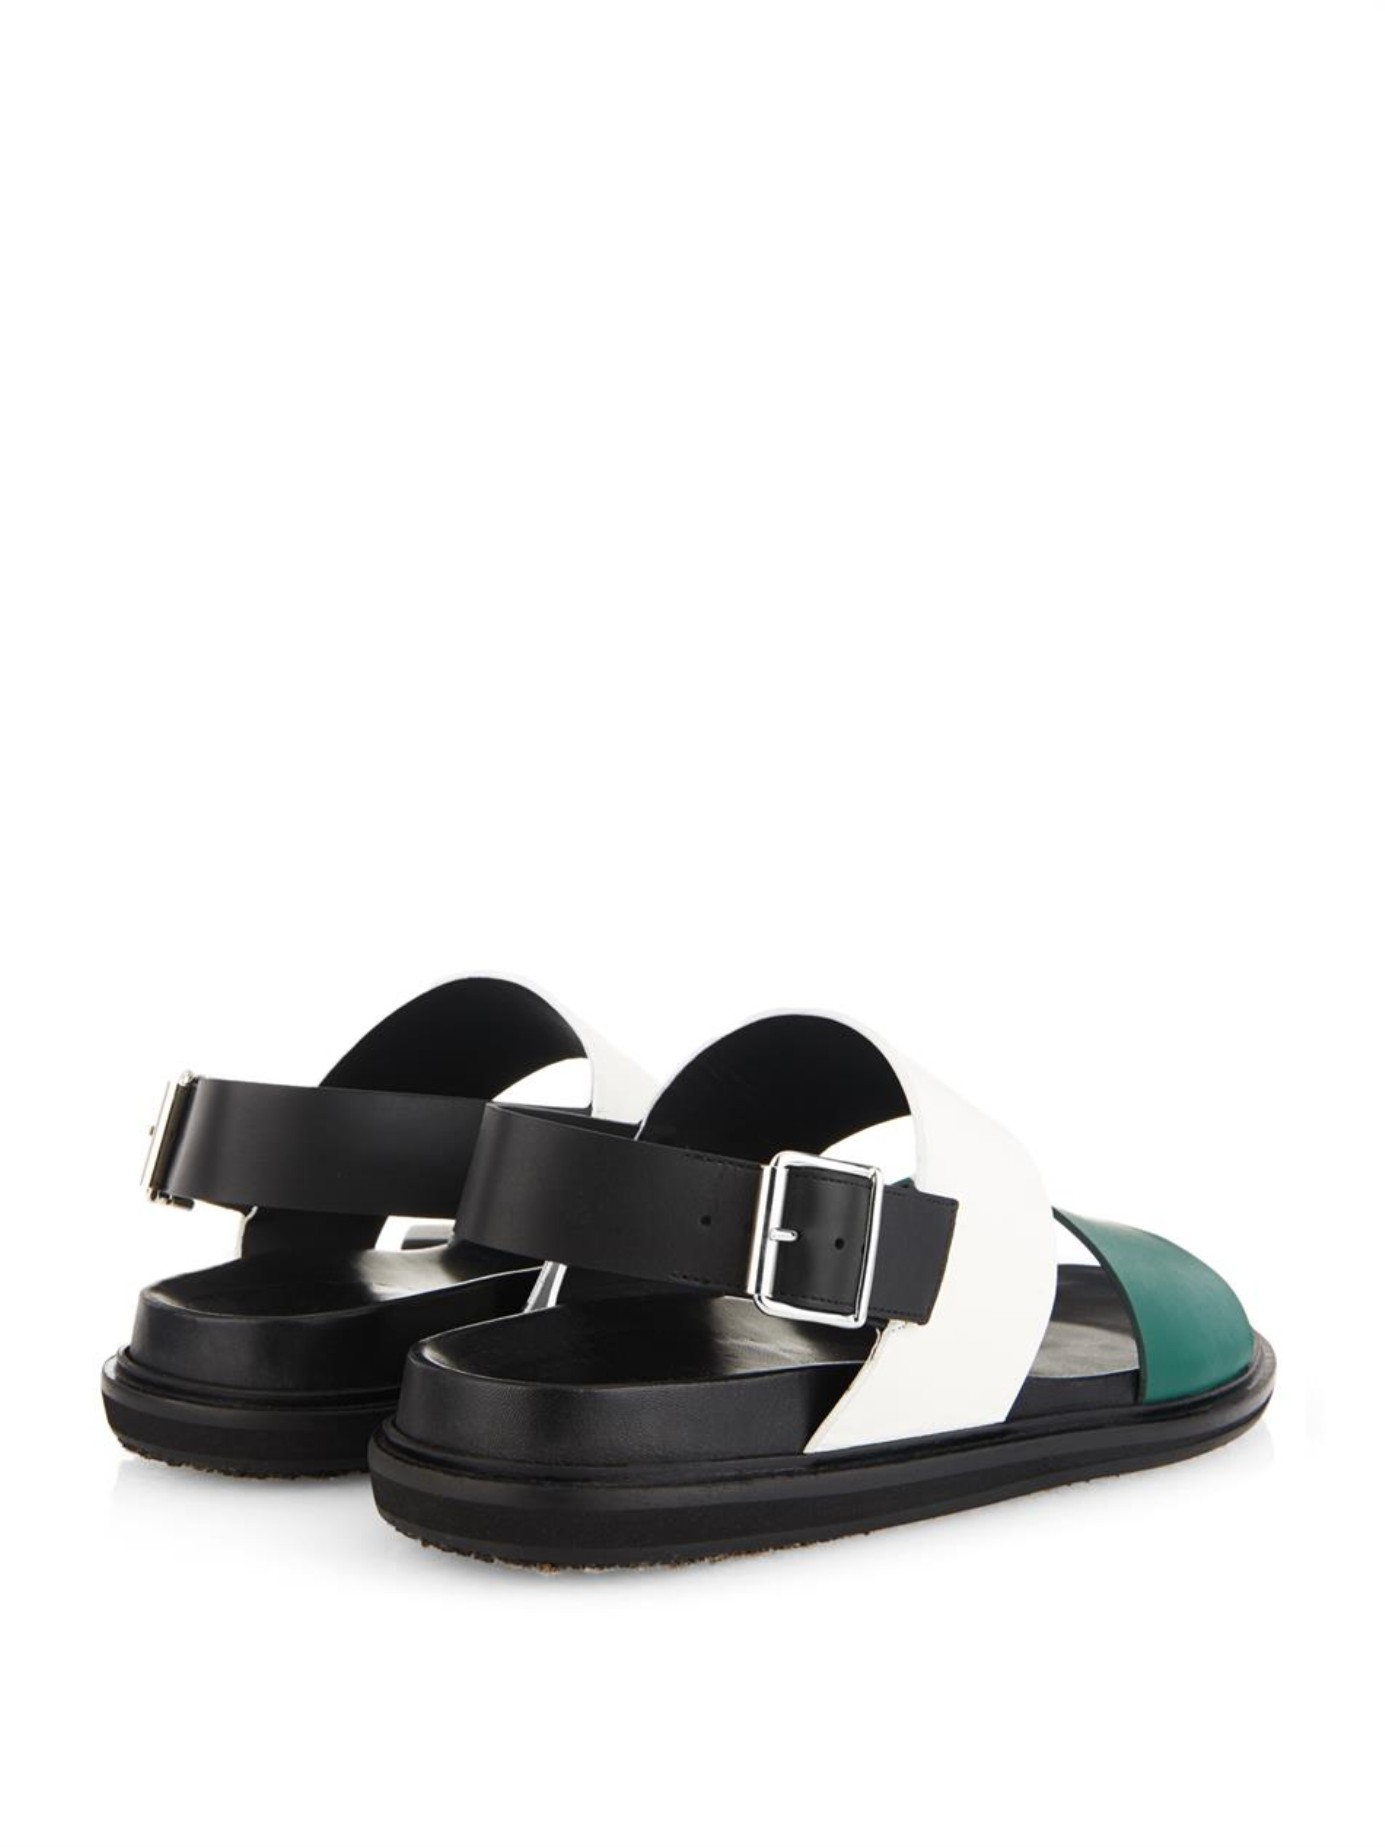 Marni Leather Flip Flops Discount Low Cost Free Shipping Good Selling Discount 2018 Footlocker Pictures Online 22xU7iP